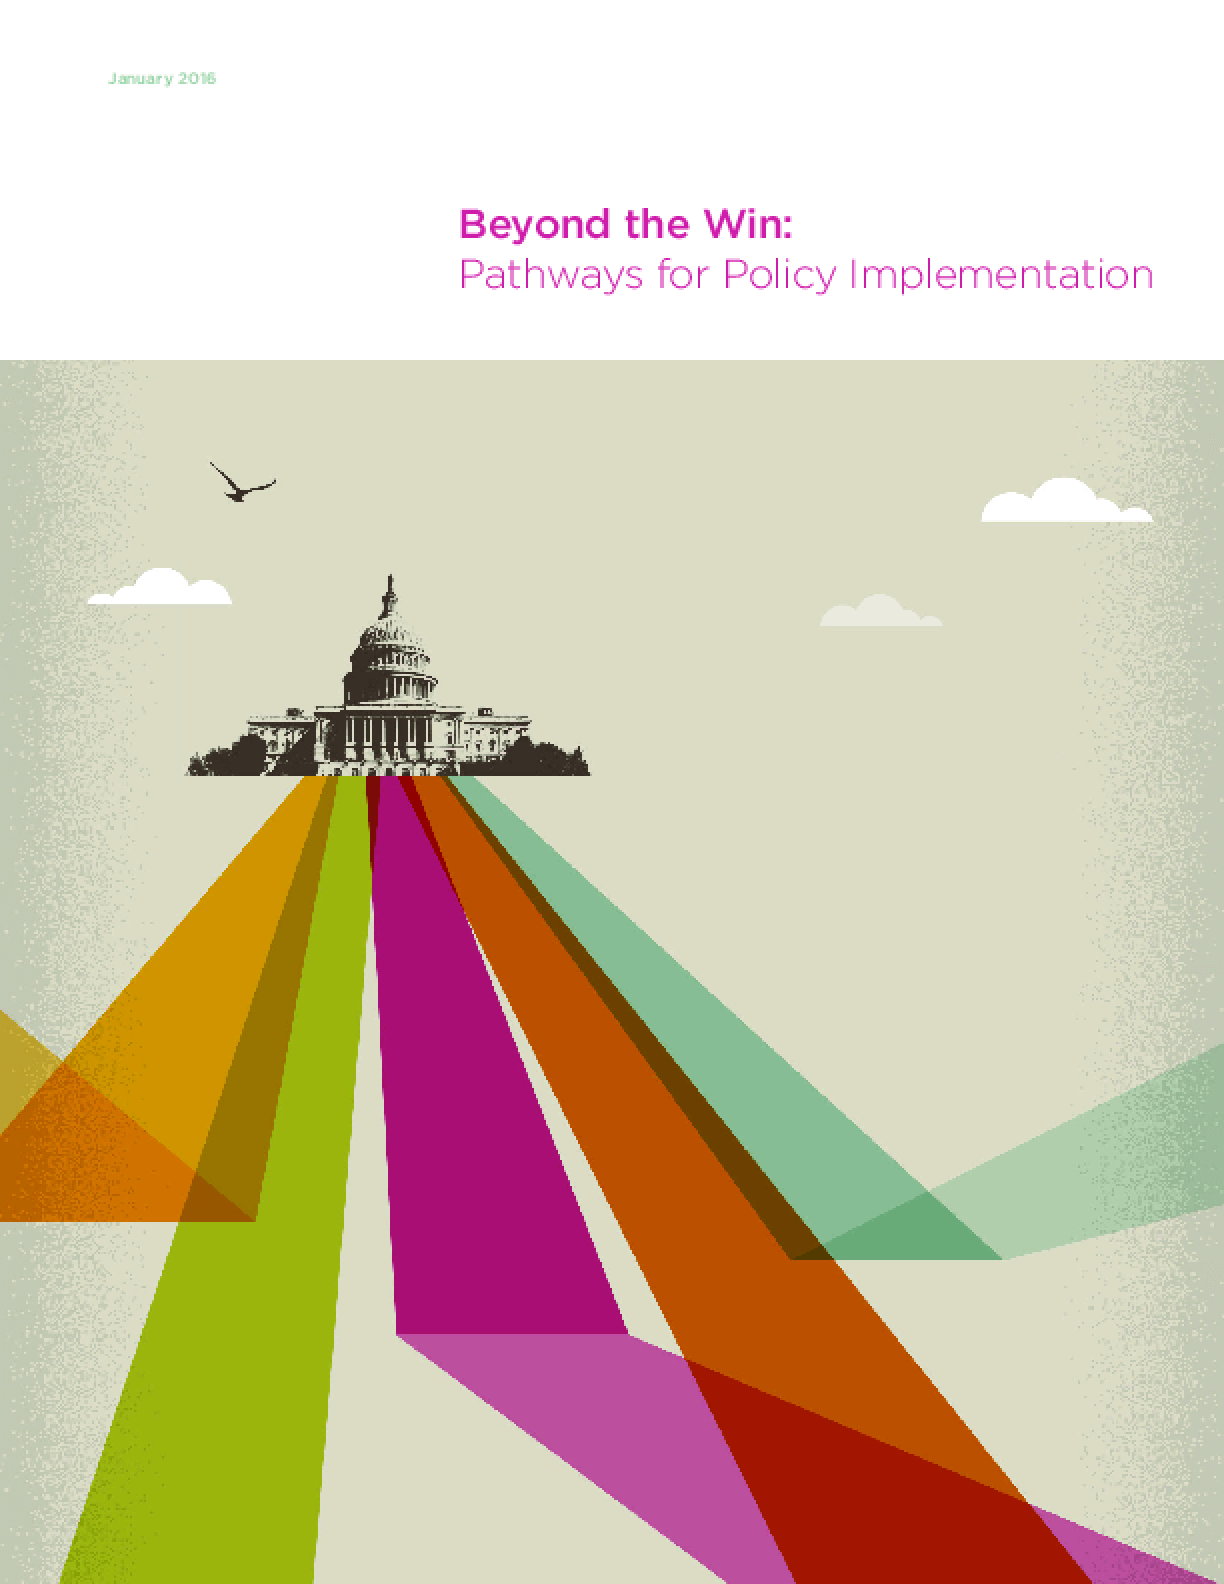 Beyond the Win: Pathways for Policy Implementation